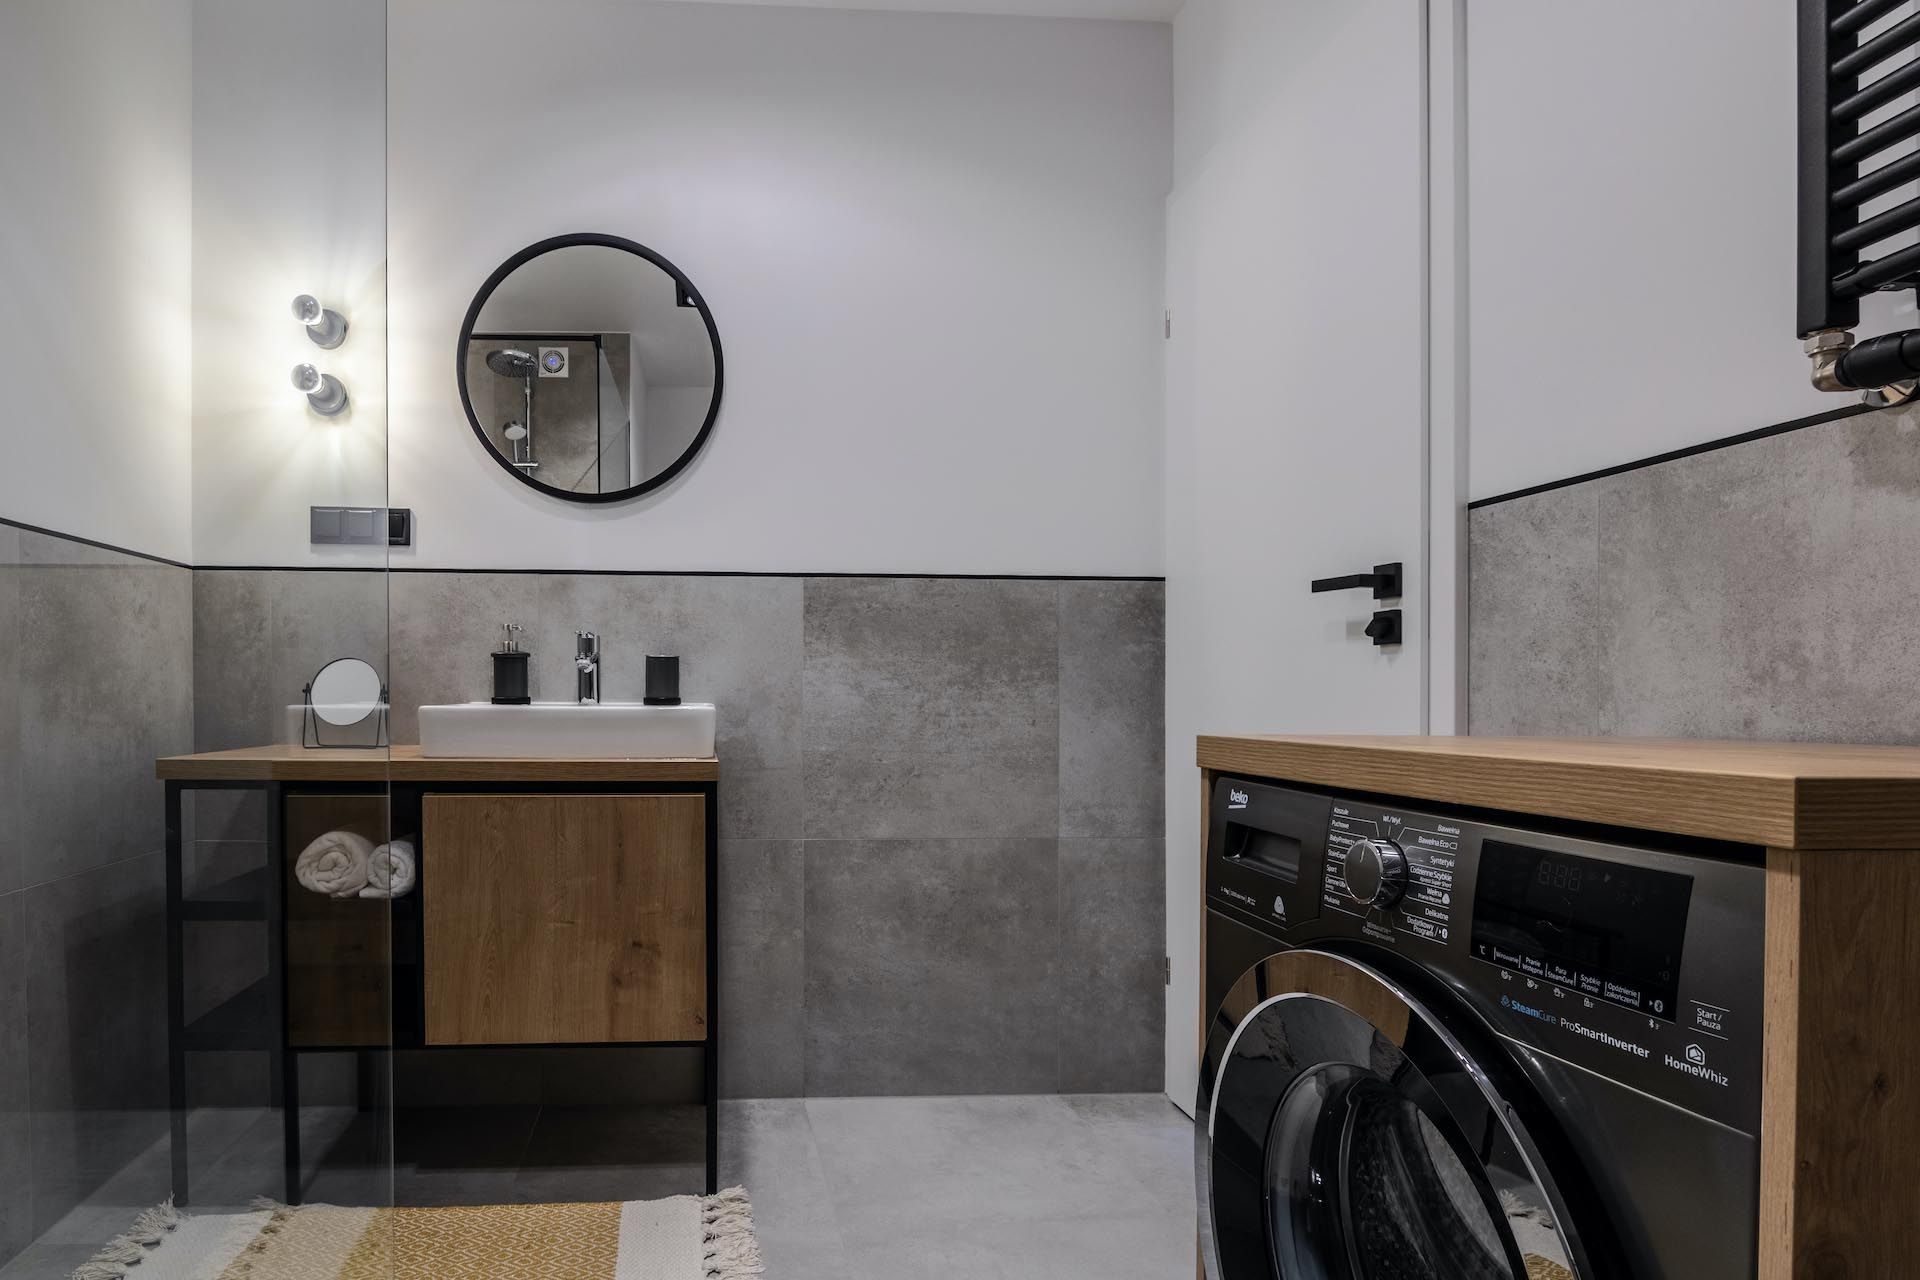 Studio - Large apartment to rent in Warsaw UPR-A-087-3